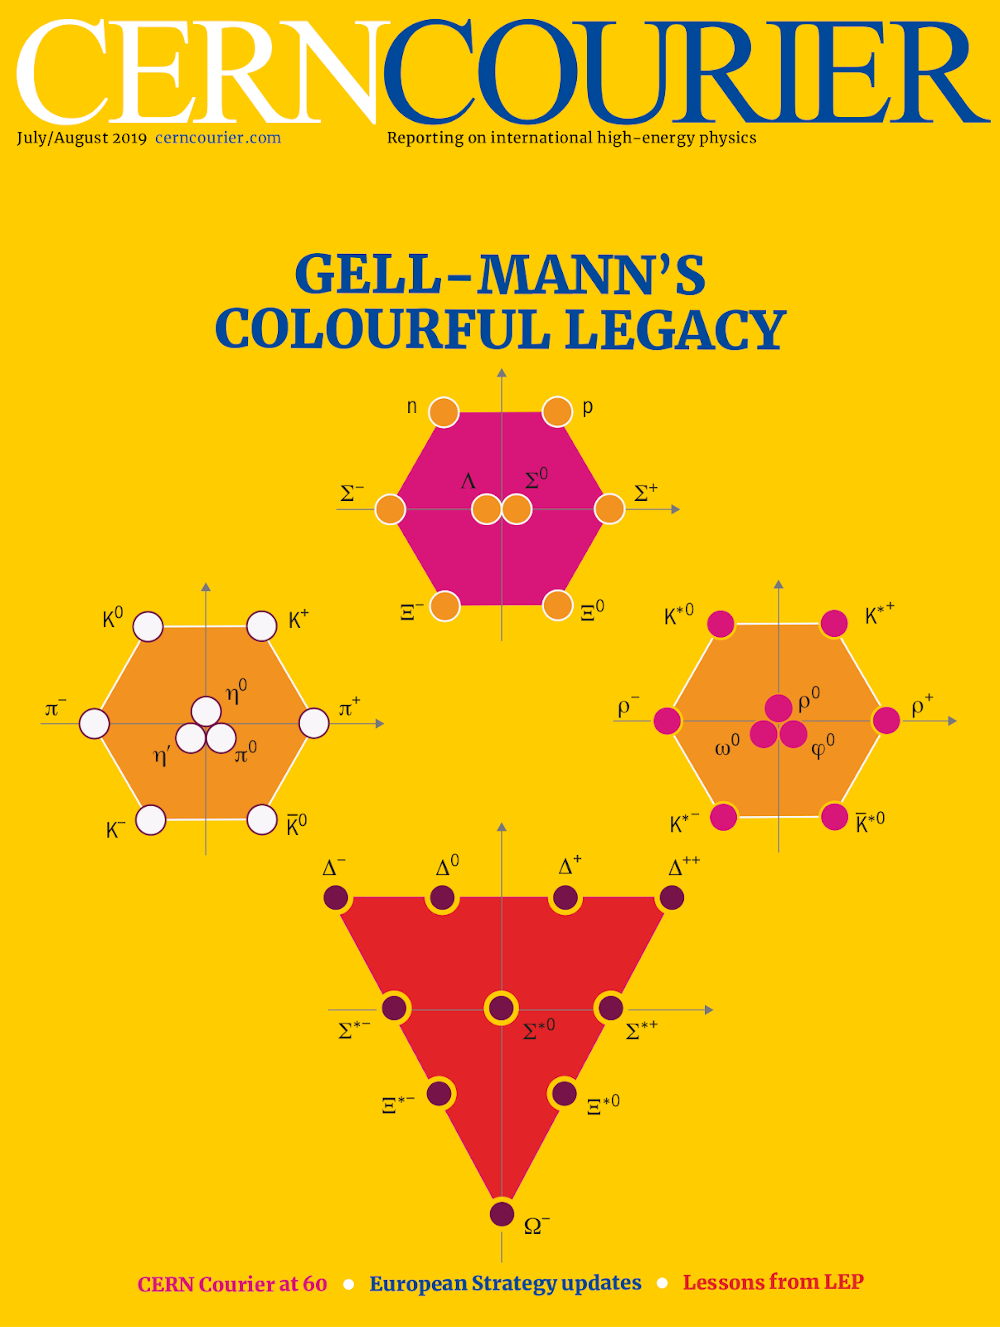 Cover of the CERN Courier's July/August 2019 issue showing the representation of hadron multiplets arising from Murray Gell-Mann's quark model